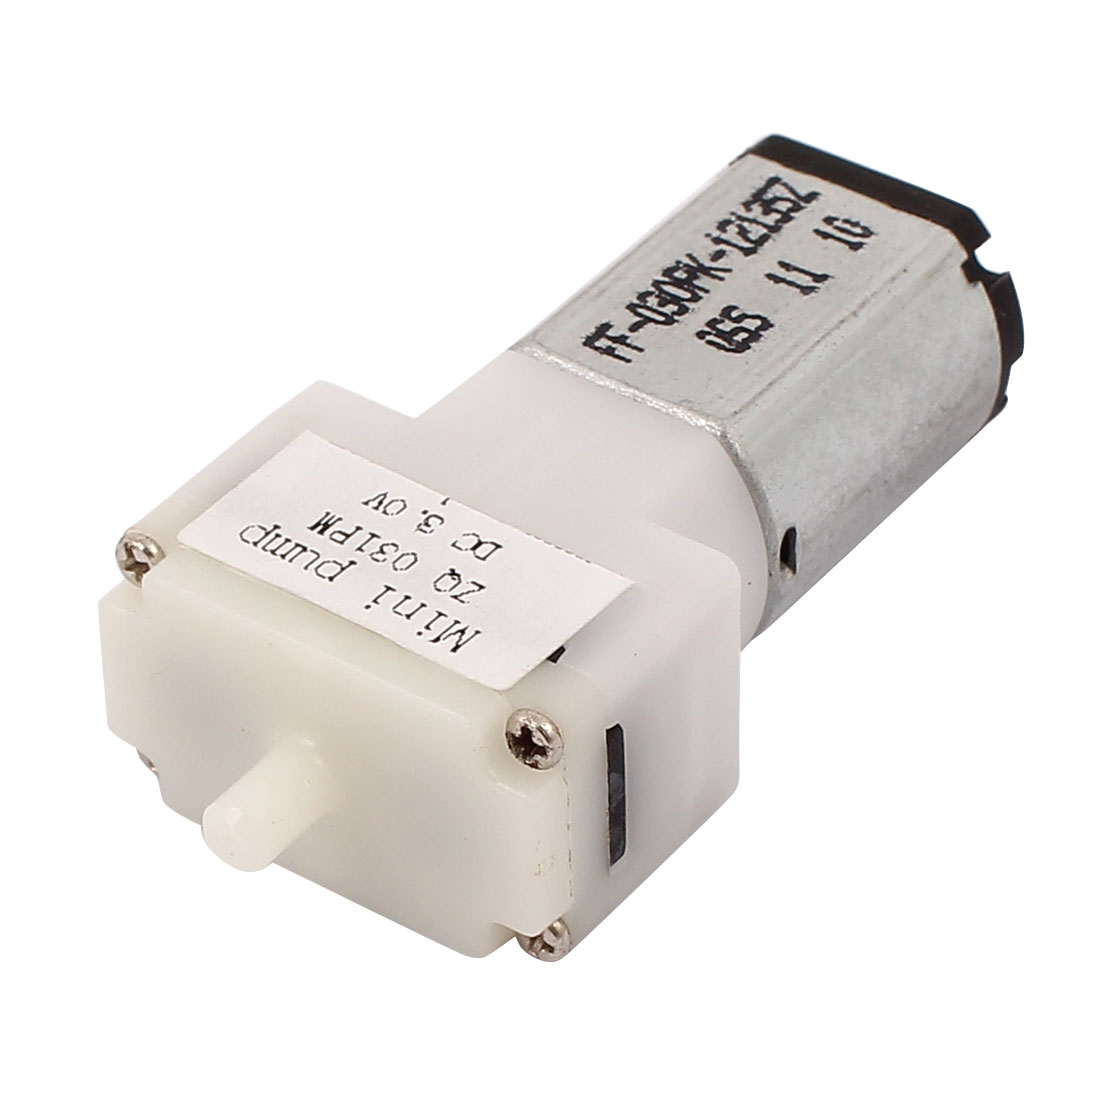 White-Plastic-Micro-Mini-Pump-KPM14A-3D-DC-3V-090924C-Air-Pump-Motor